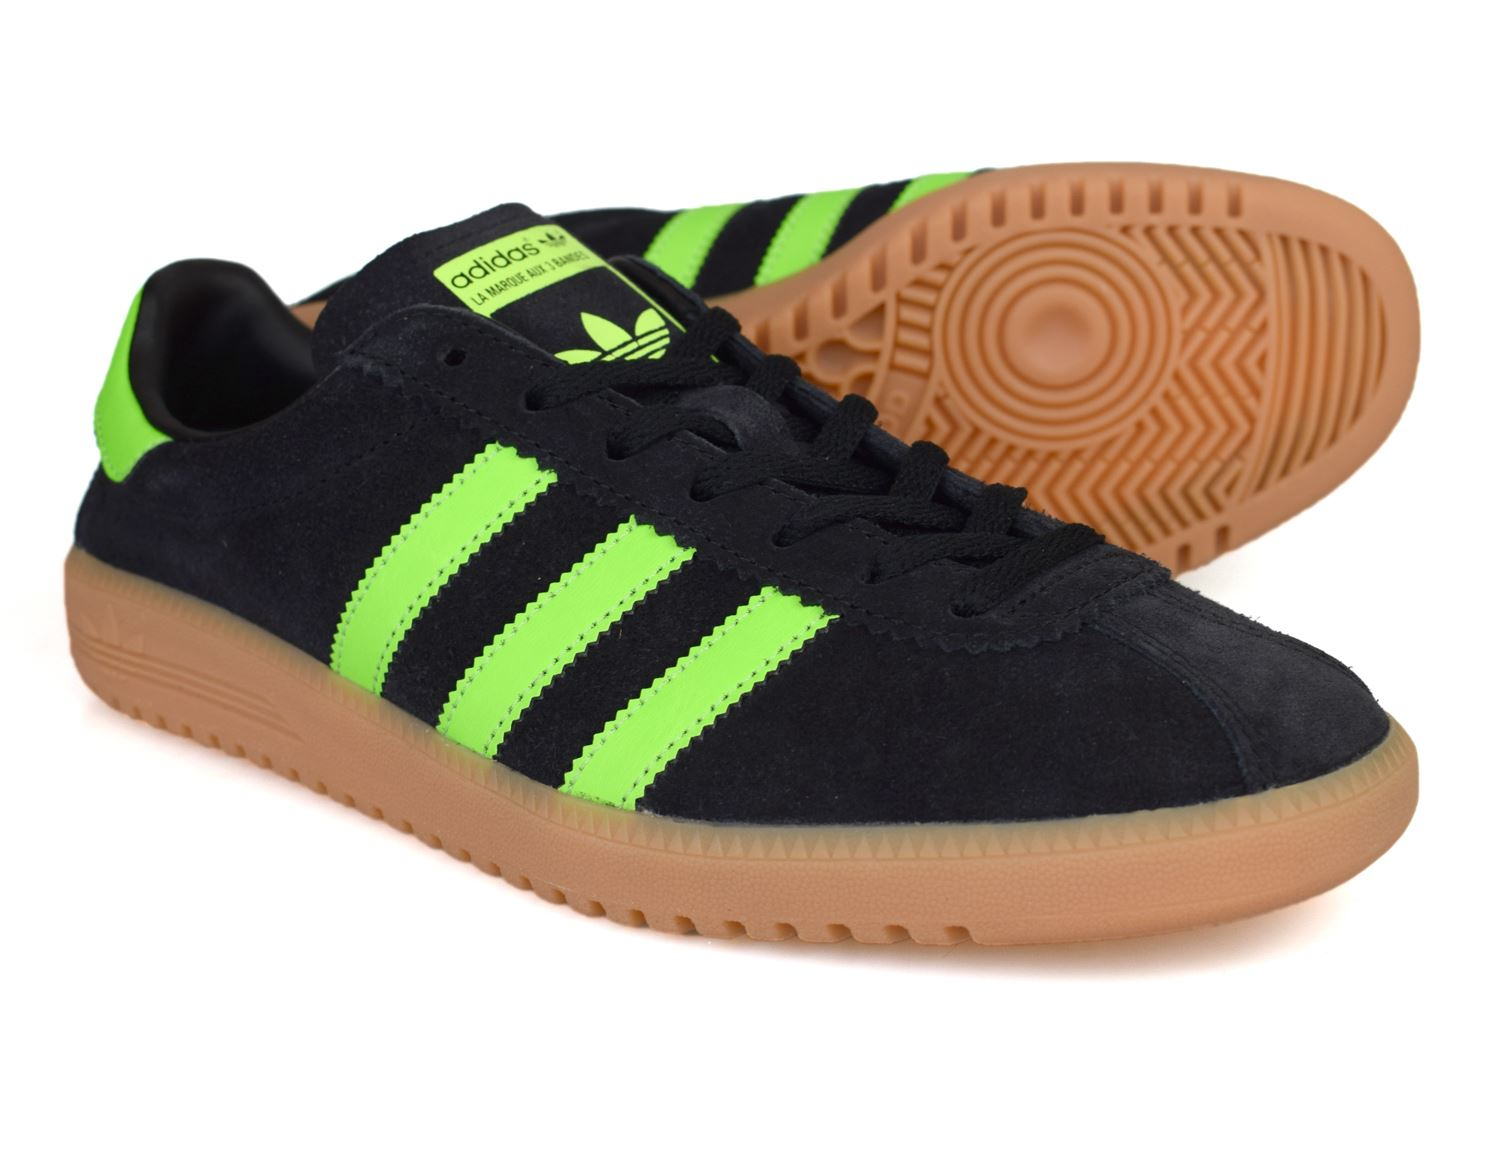 Details about Adidas Originals Bermuda Black Green Trainers BB5271 Free UK P&P!